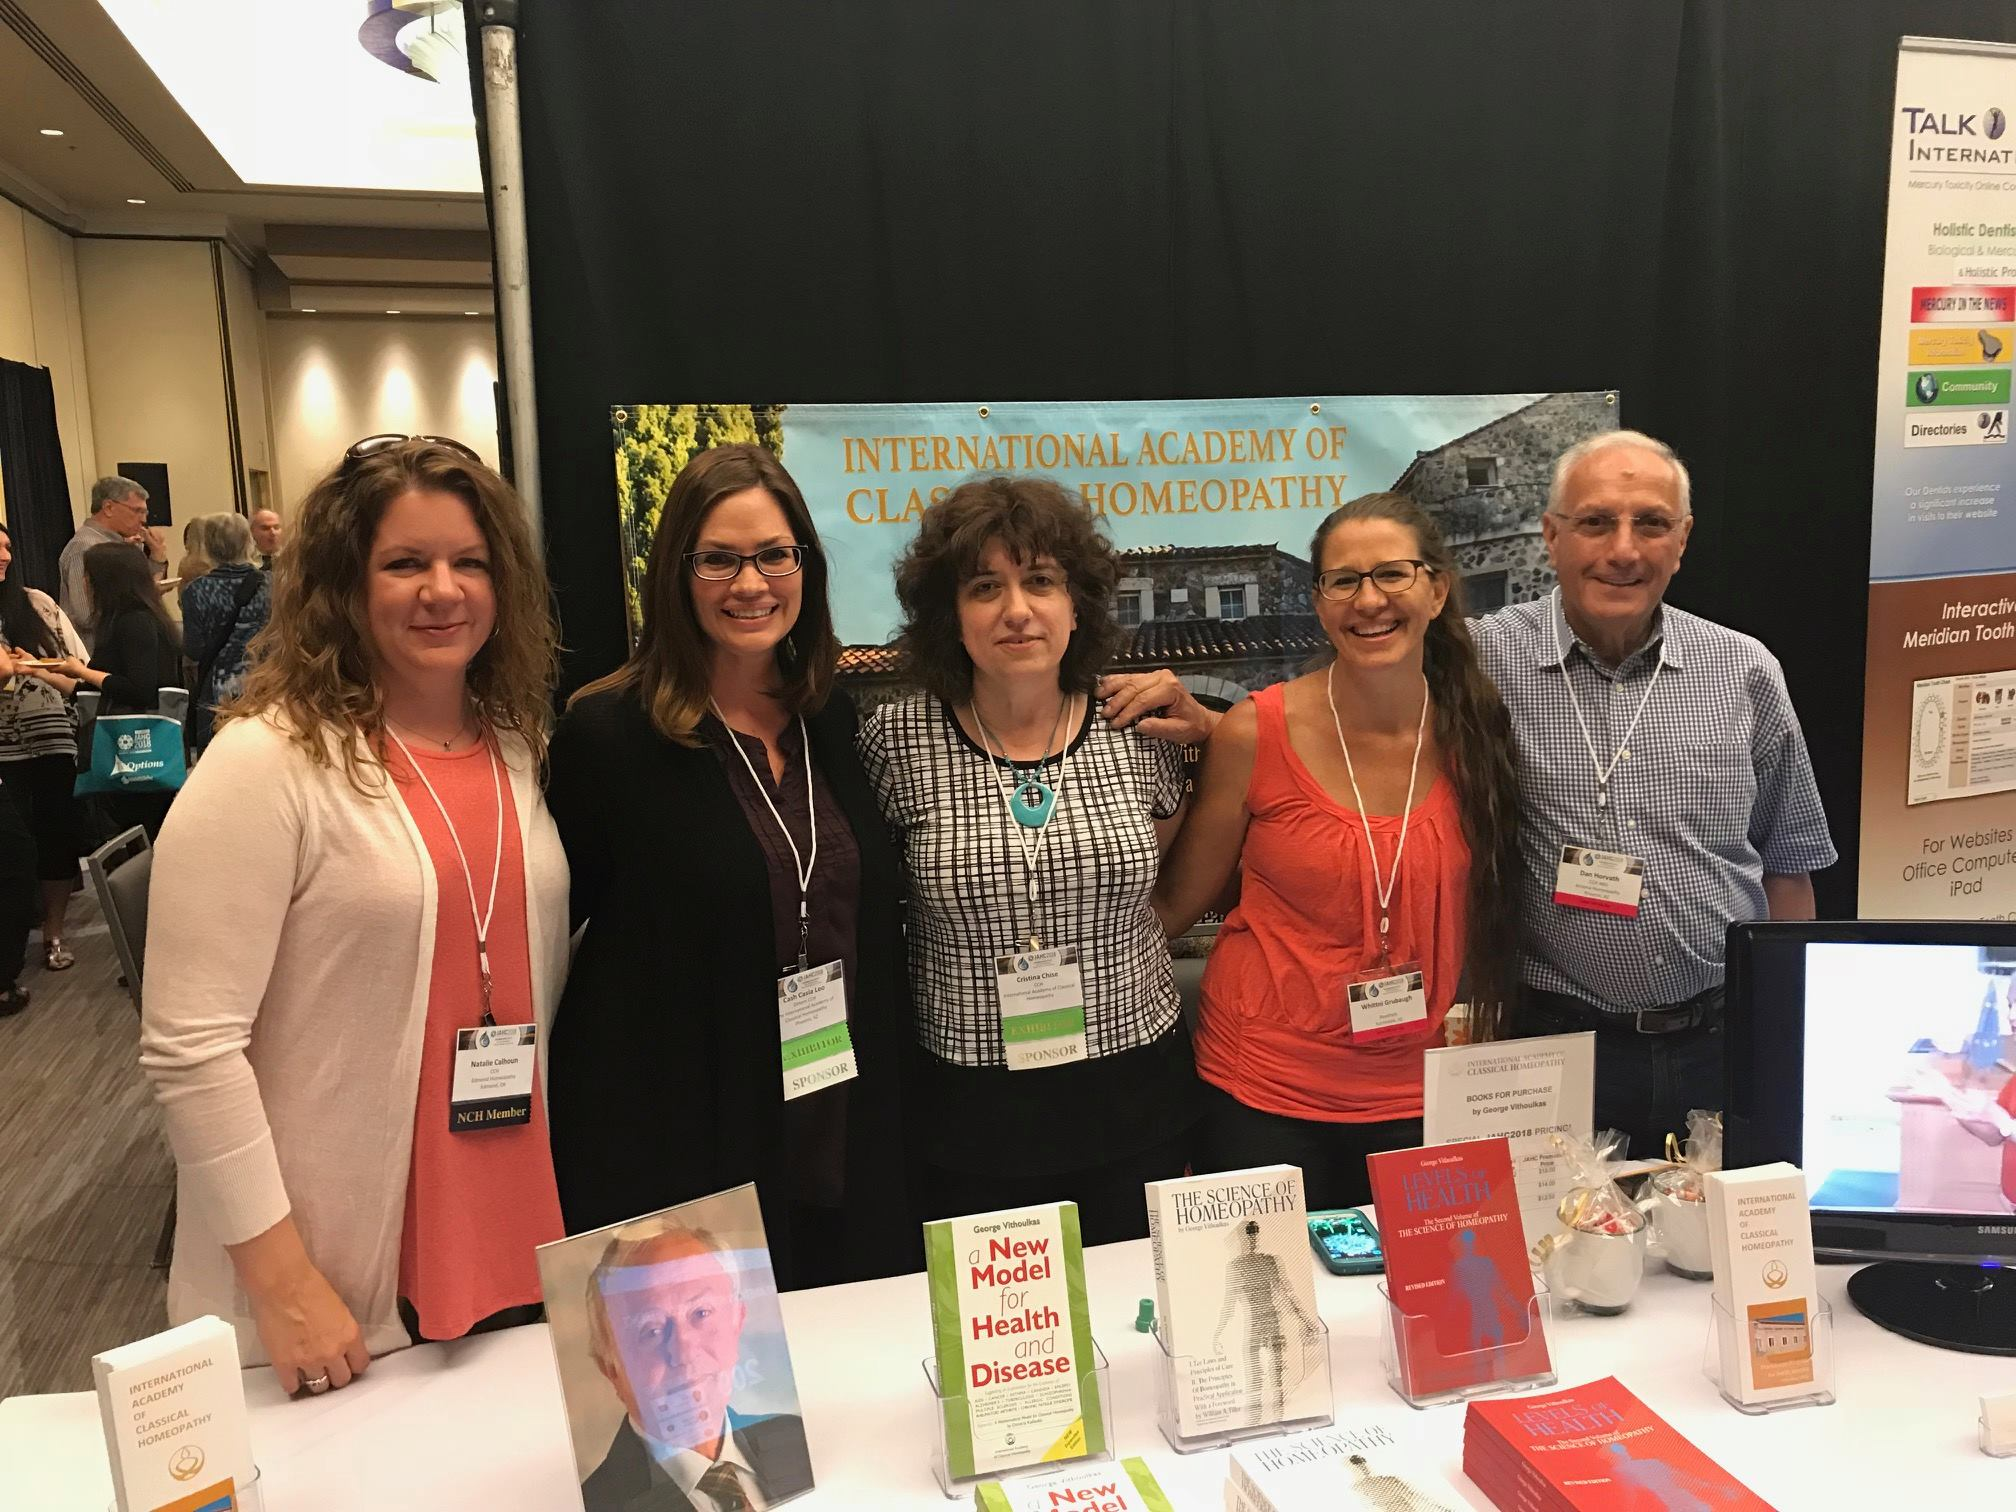 Vithoulkas-IACH PARTICIPATED AT THE 13TH ANNUAL JOINT AMERICAN HOMEOPATHIC CONFERENCE IN PHOENIX, AZ, USA5